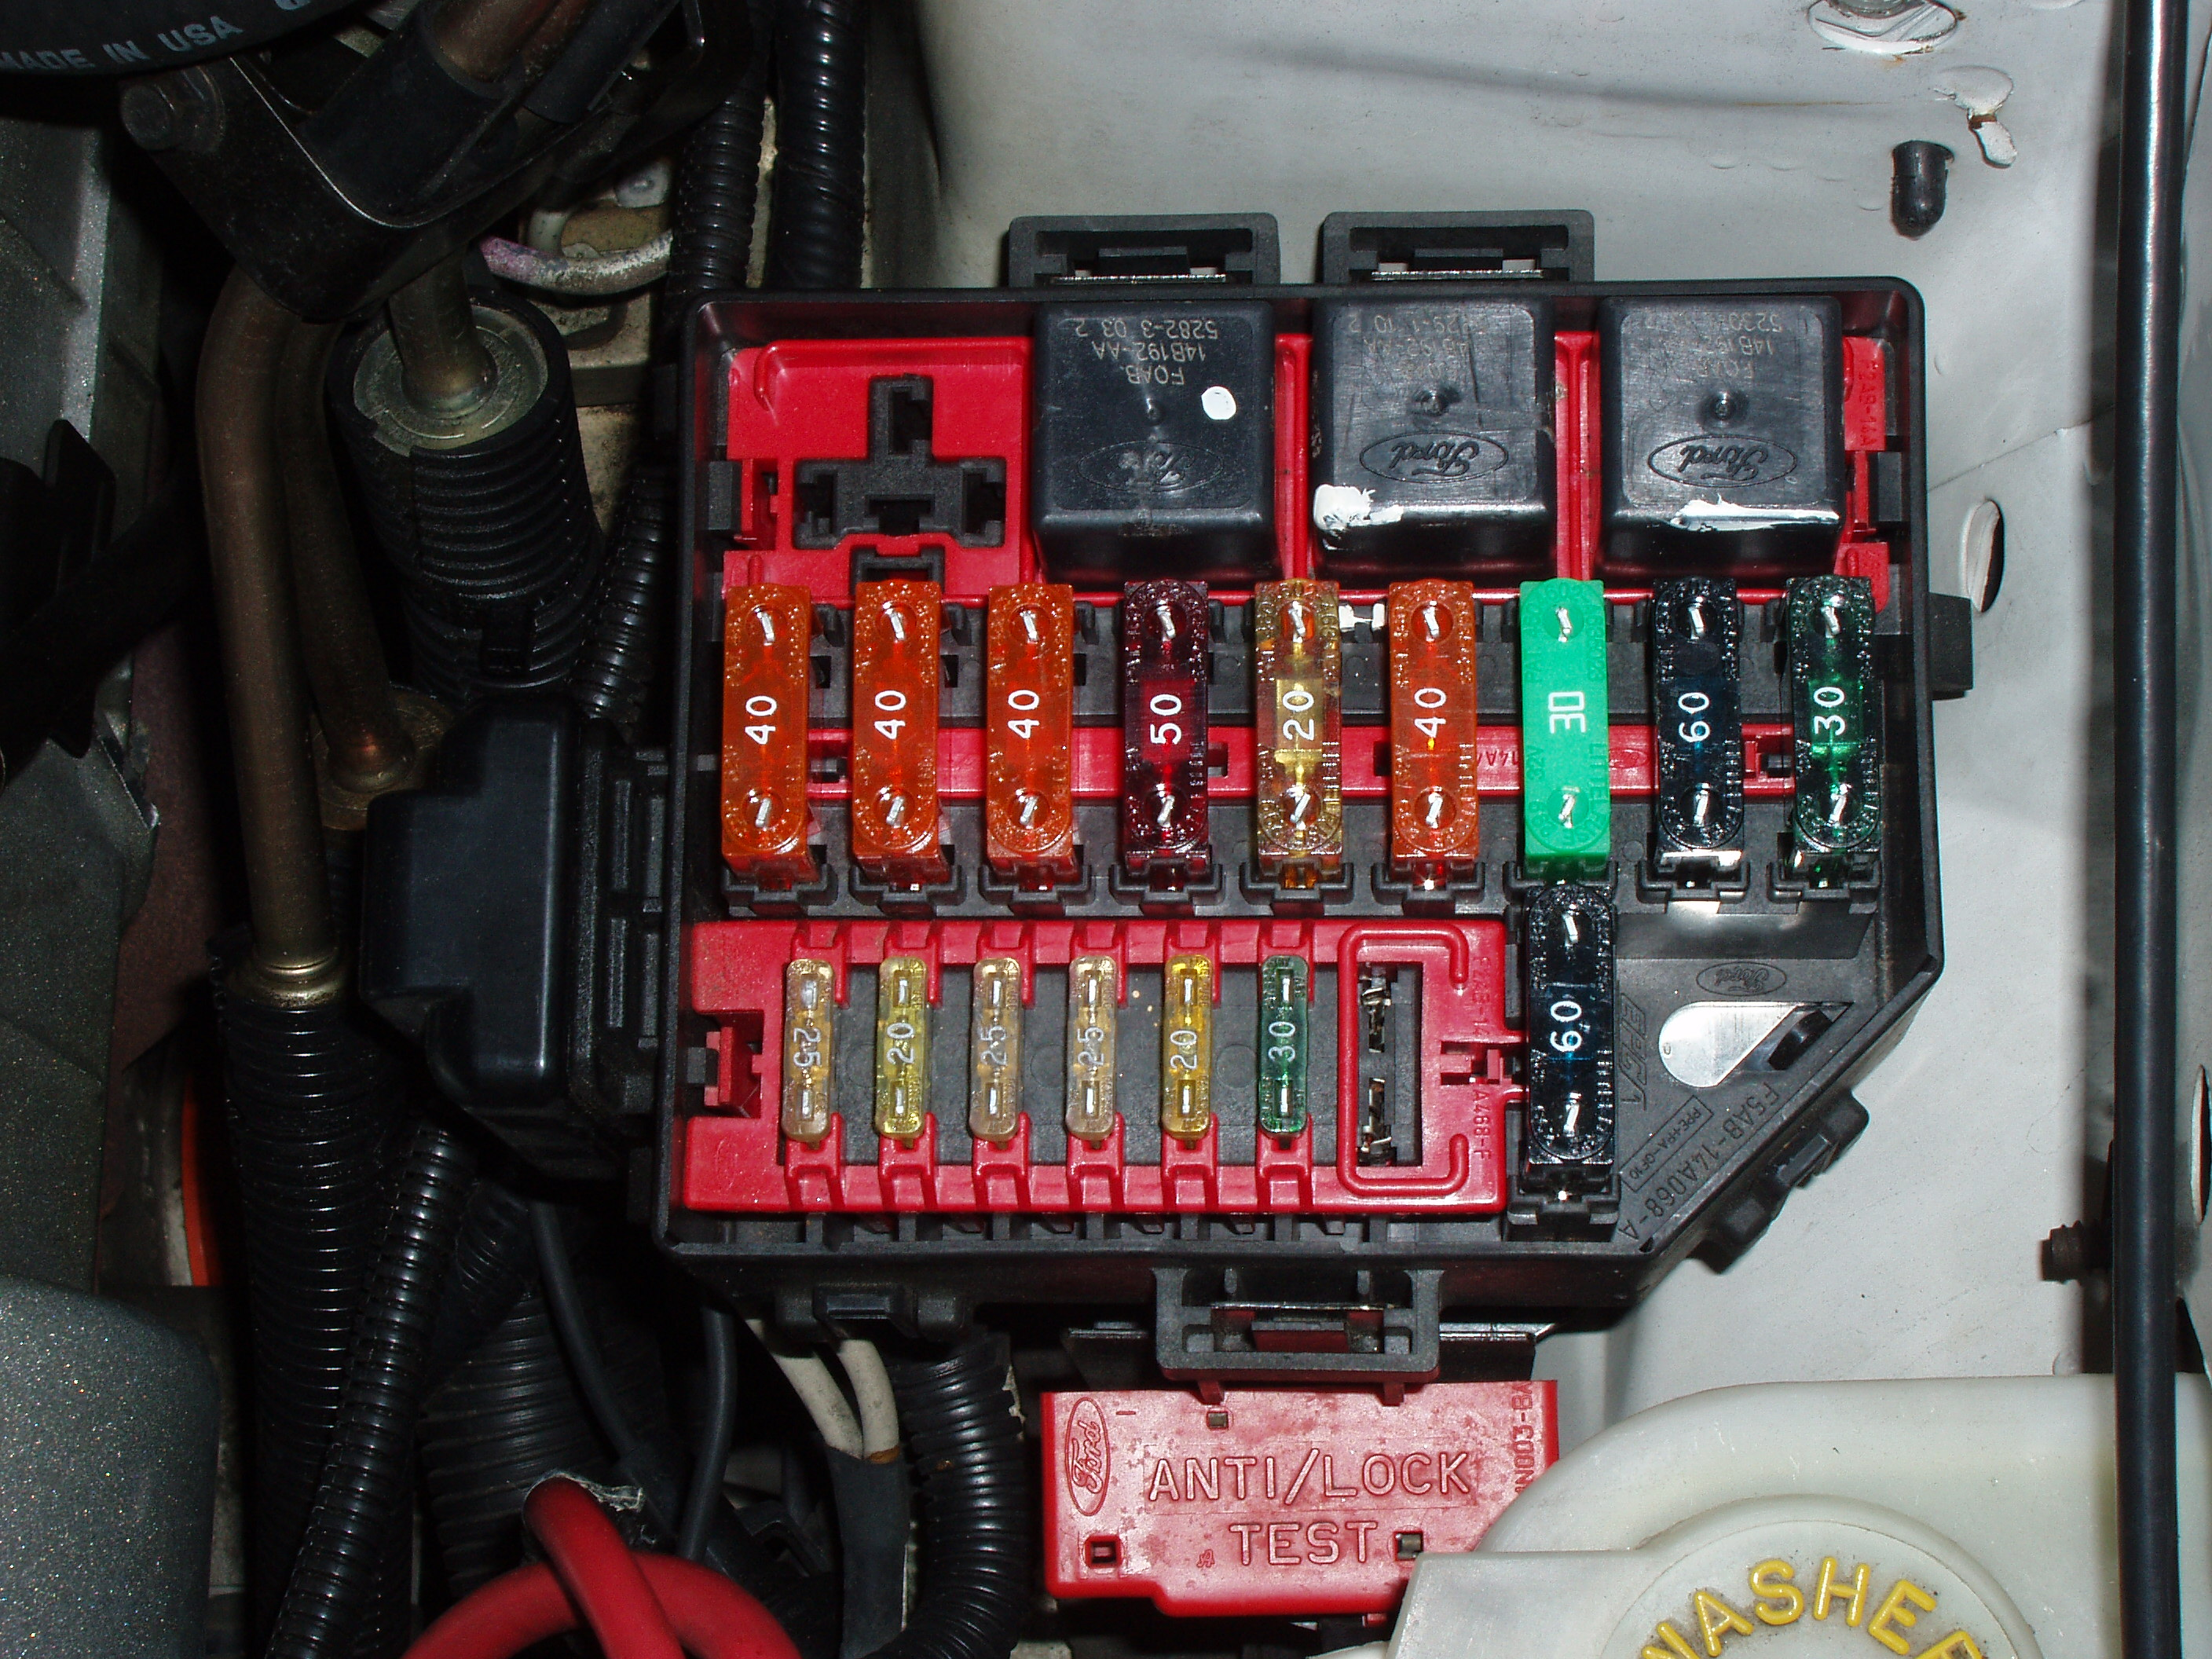 2004 Mustang Fuse Box Location List Of Schematic Circuit Diagram Polaris Ranger Accessory Ford Gt 1996 To 2014 Why Is Abs Light On Mustangforums Rh Com Engine Layout